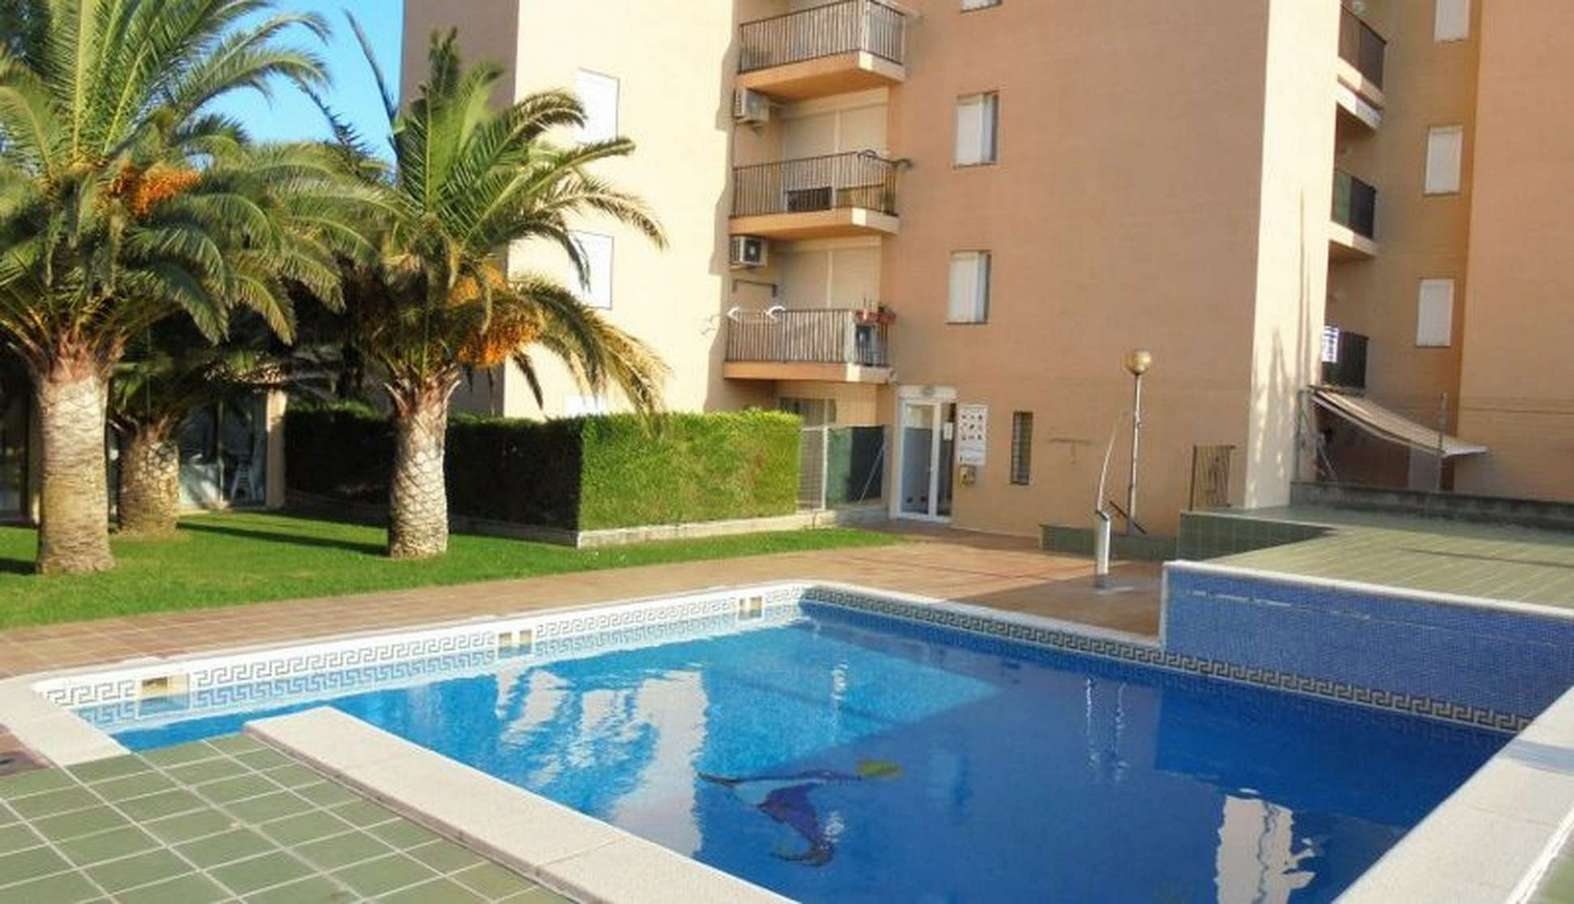 Beautiful 2 bedroom apartment with parking and pool, for sale in Santa Margarita